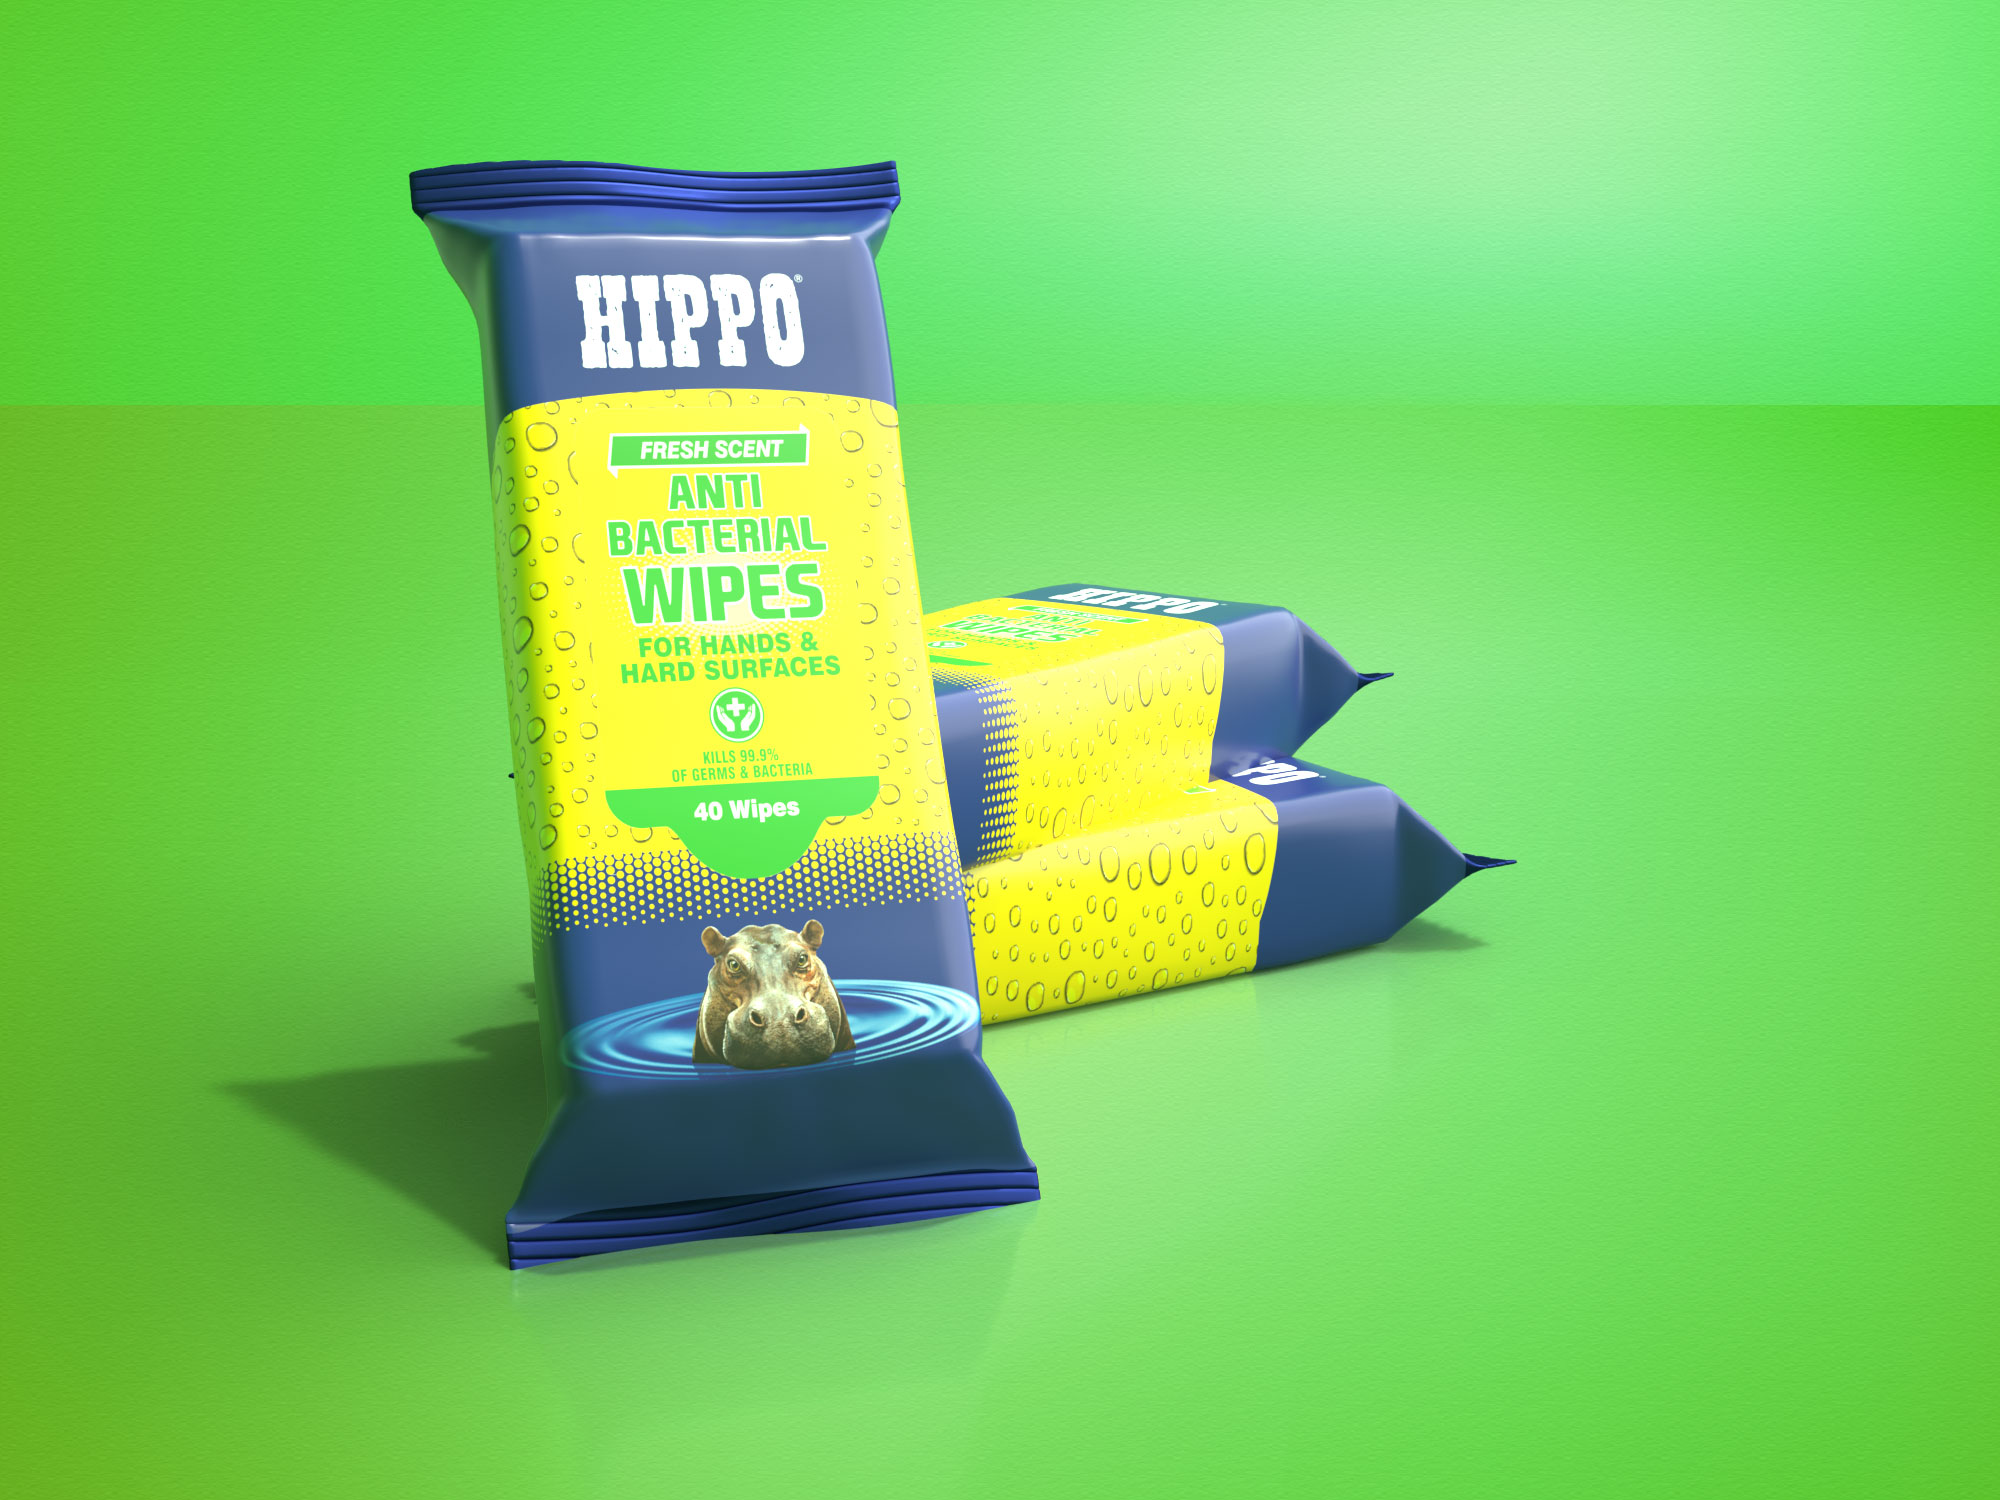 Hippo Anti-Bacterial Wipes